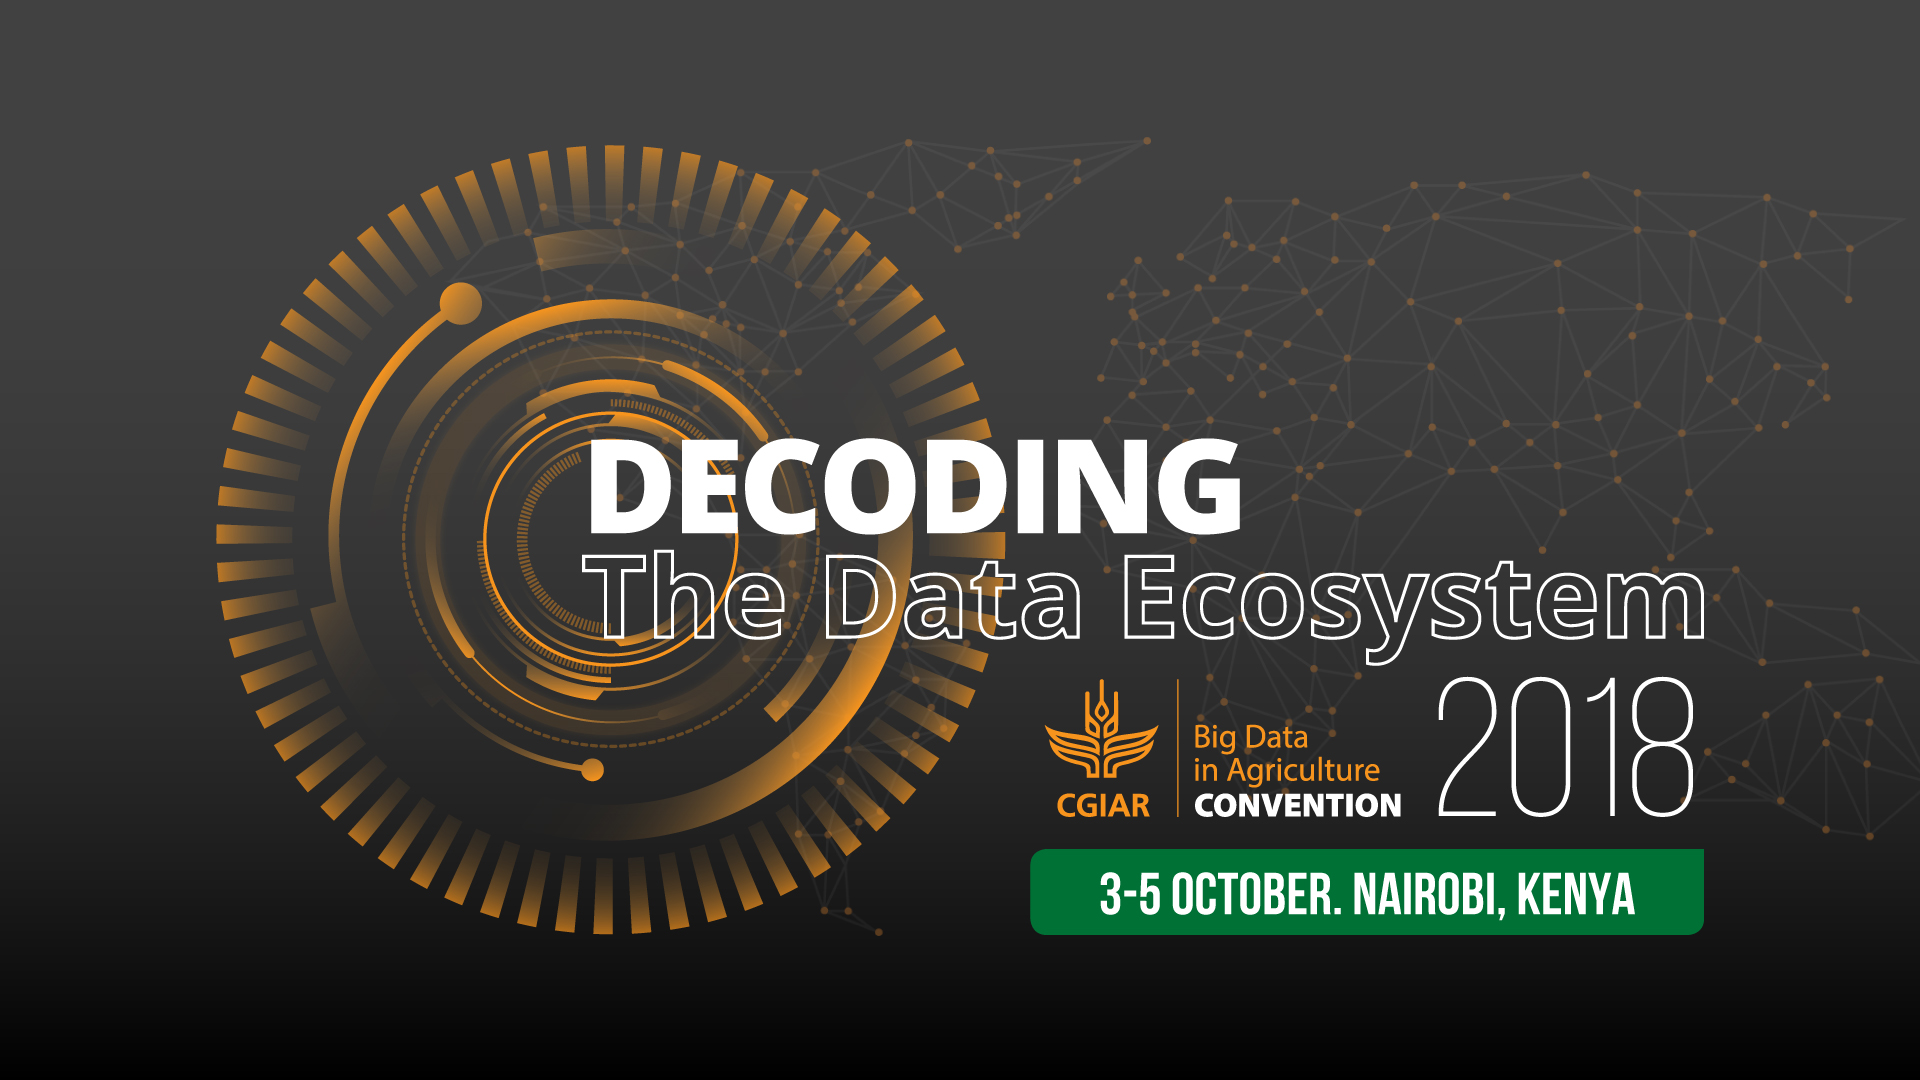 Decoding the Data Ecosystem: Big Data in Agriculture